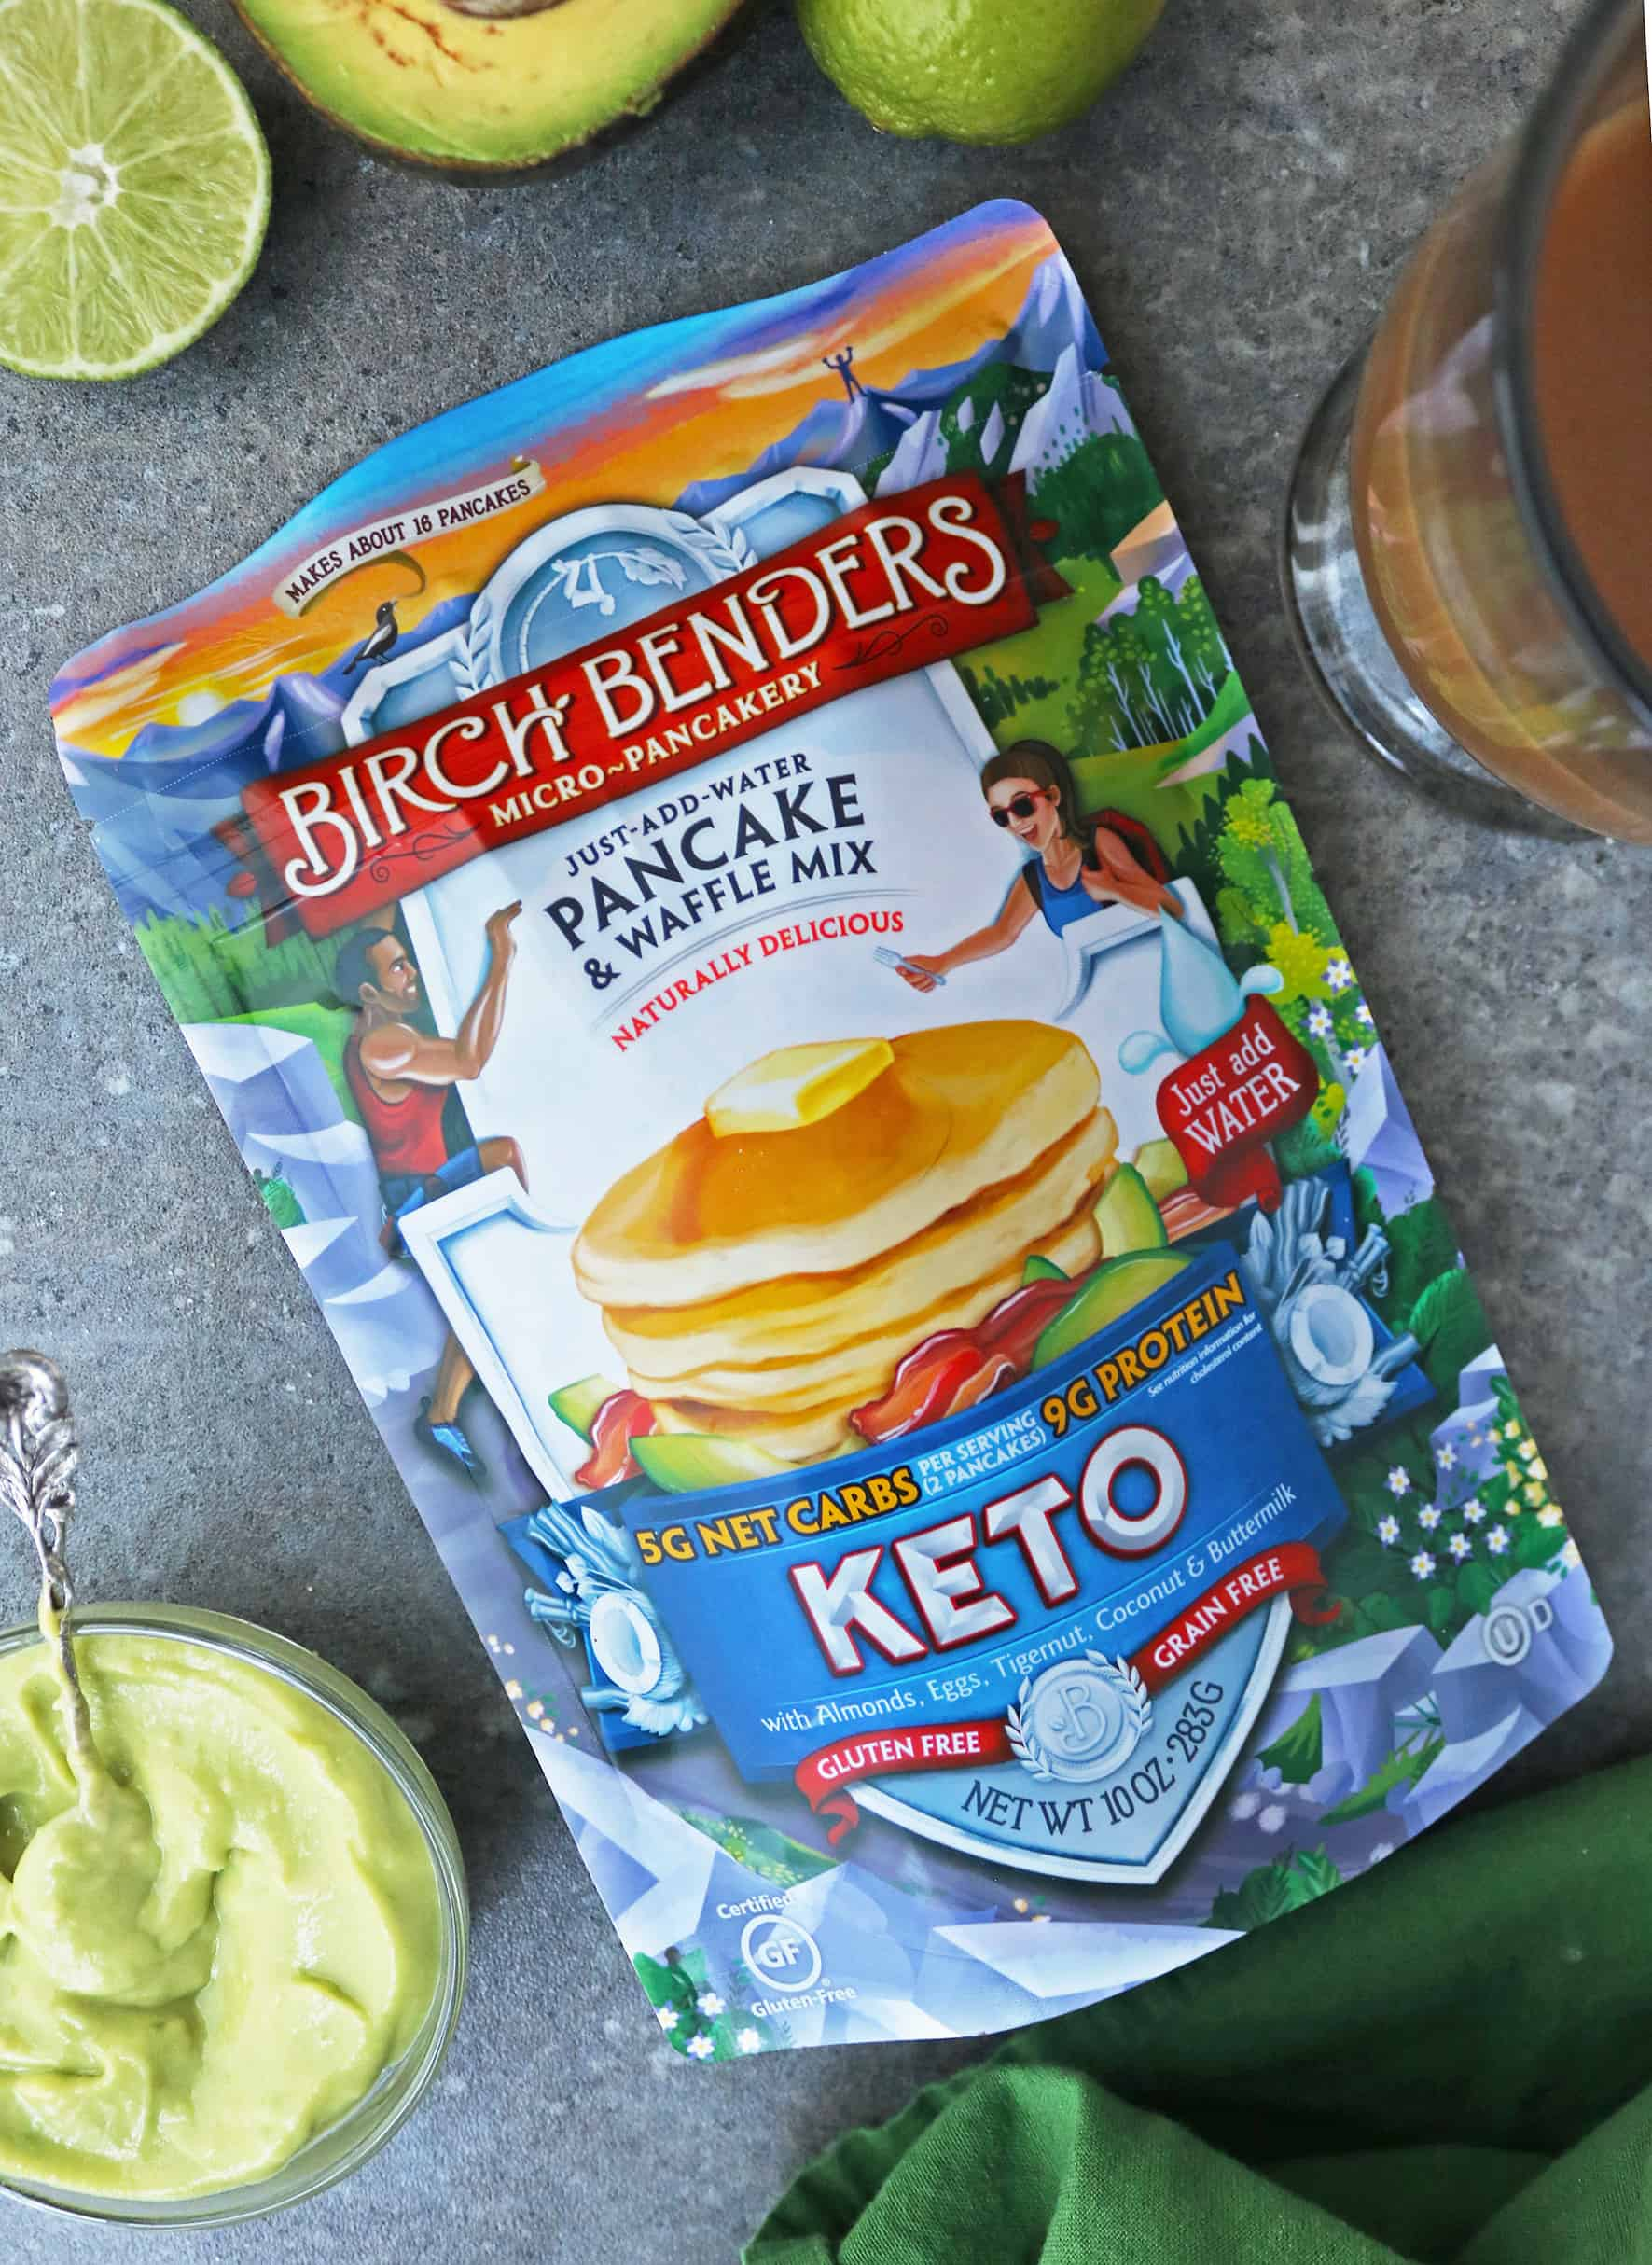 Birch Benders Keto Pancake & Waffle Mix, 10 oz on counter